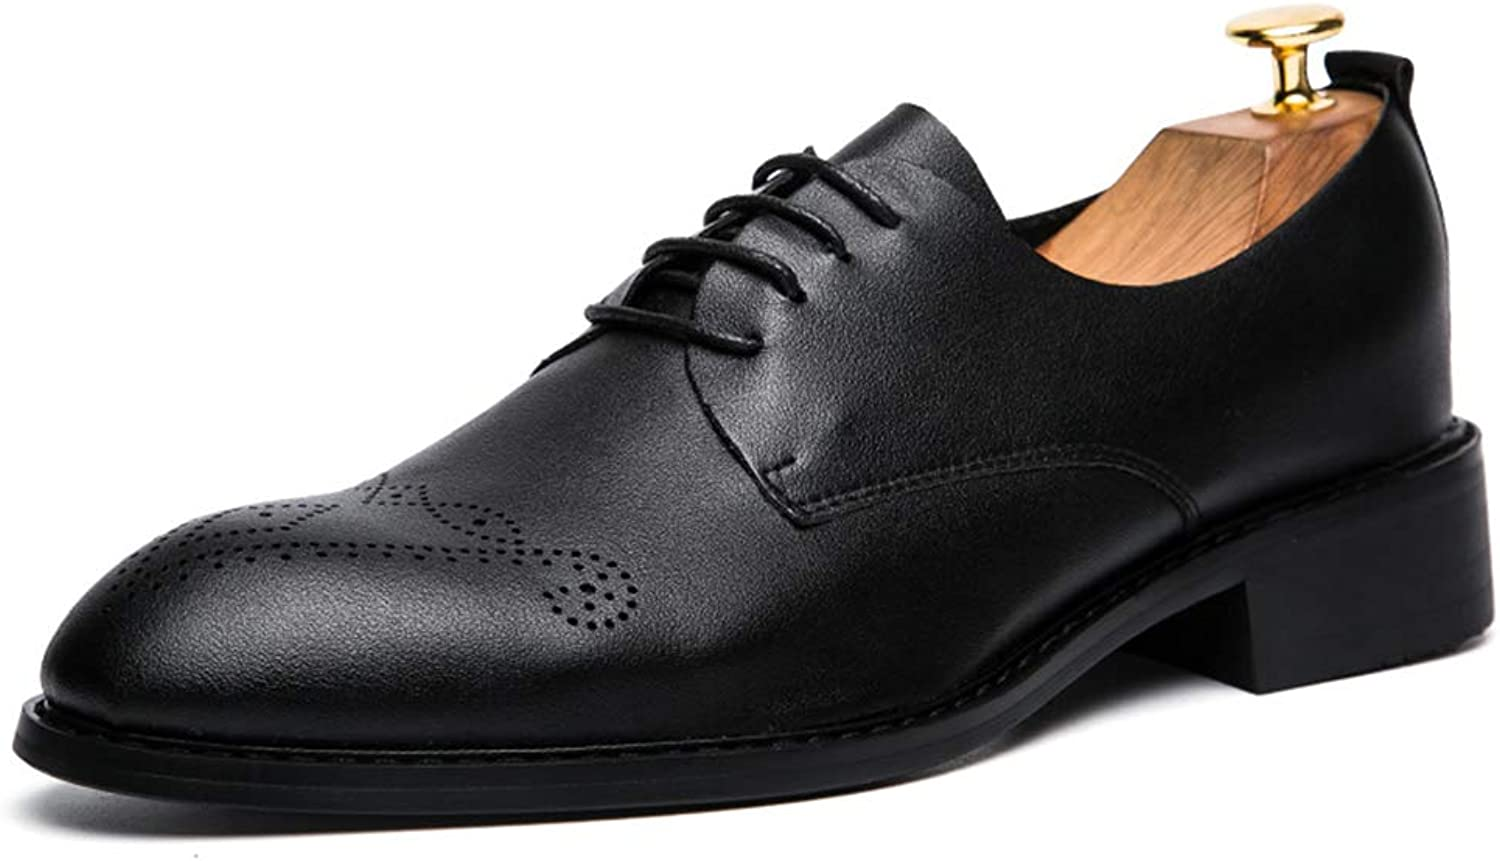 CHENXD shoes, Men's Simple British Style Business Oxford Casual Soft Leather Carving Brogue shoes